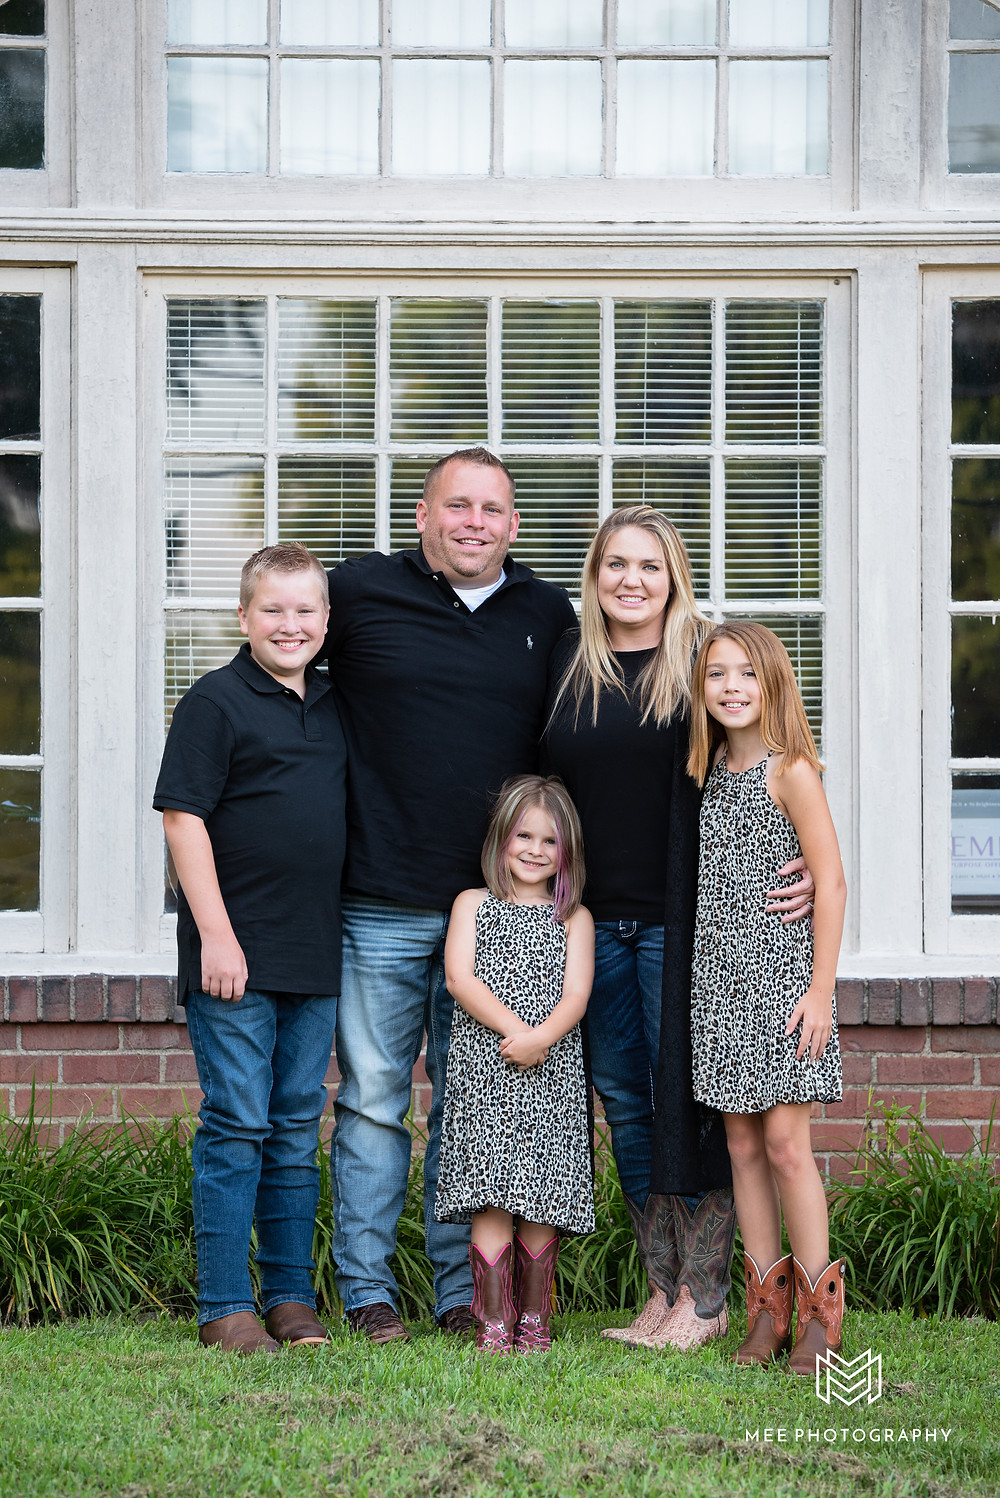 Family dressed in black and leopard print for their family session at Bethany College